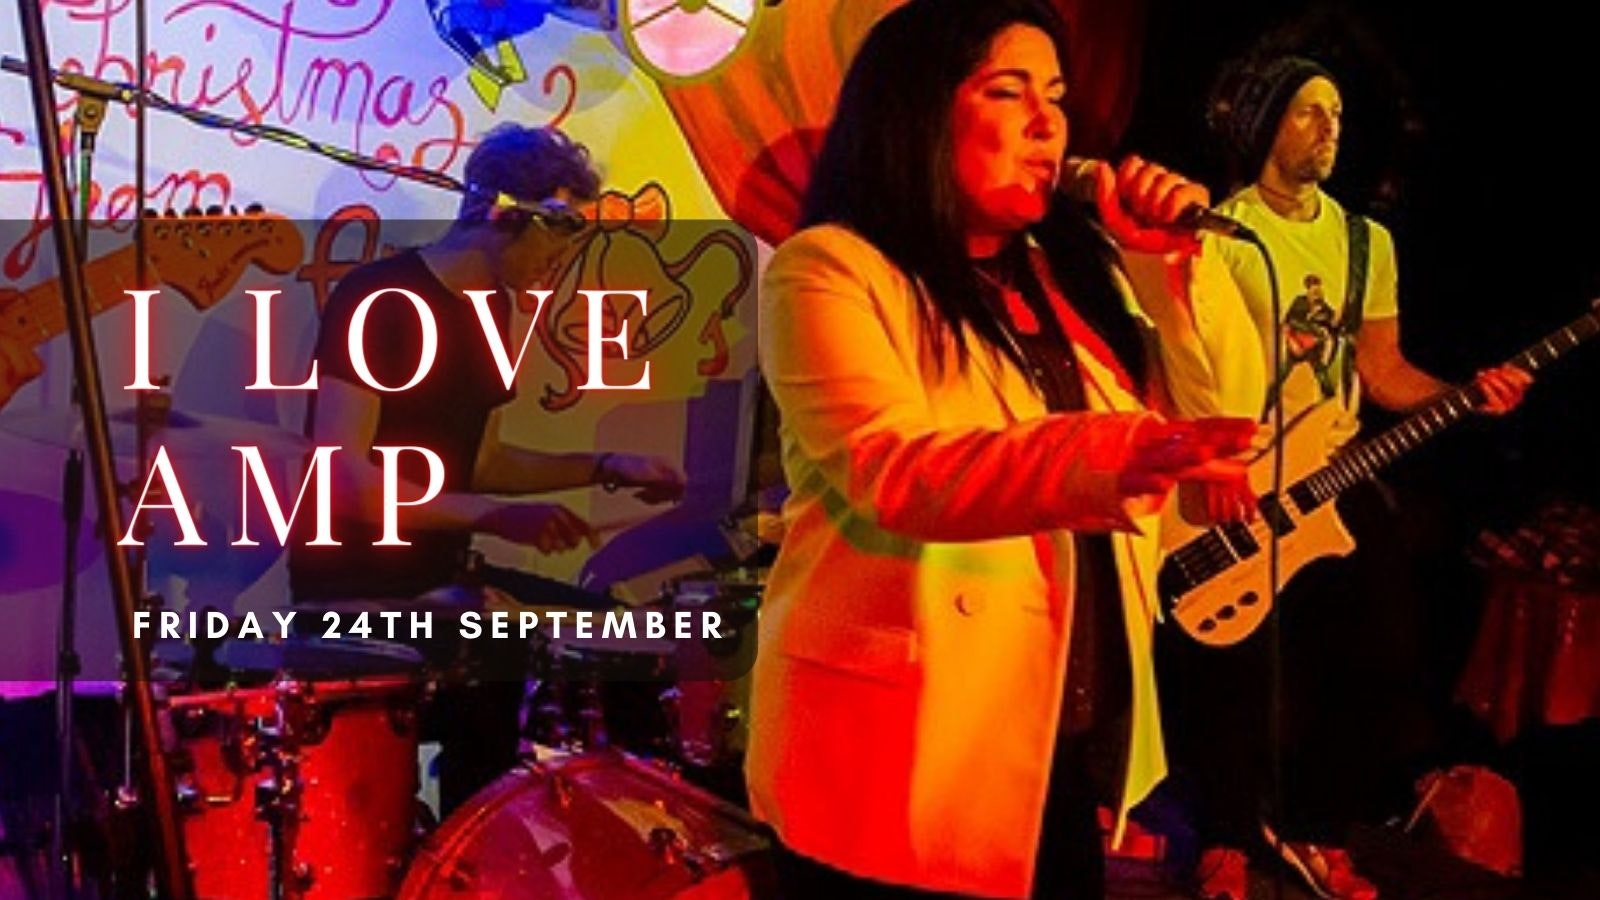 I LOVE AMP   Plymouth, Annabel's Cabaret & Discotheque